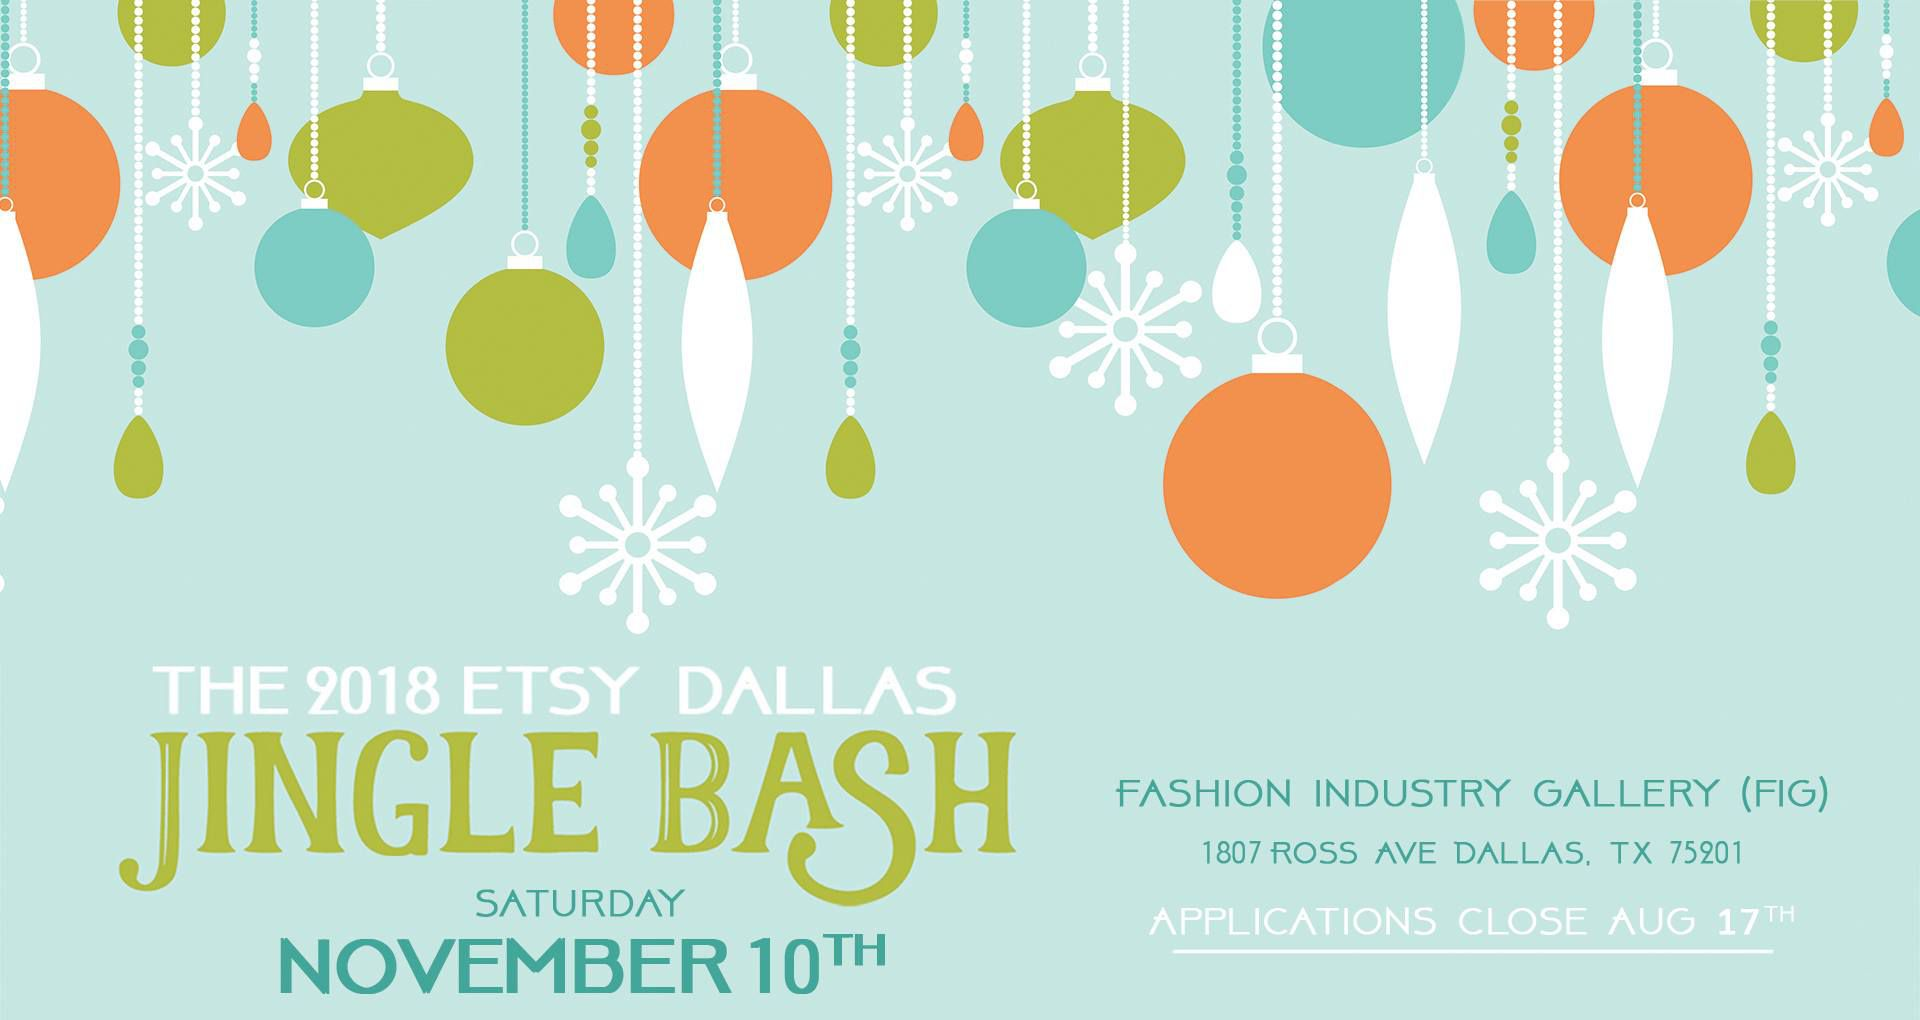 etsy dallas bash jingle